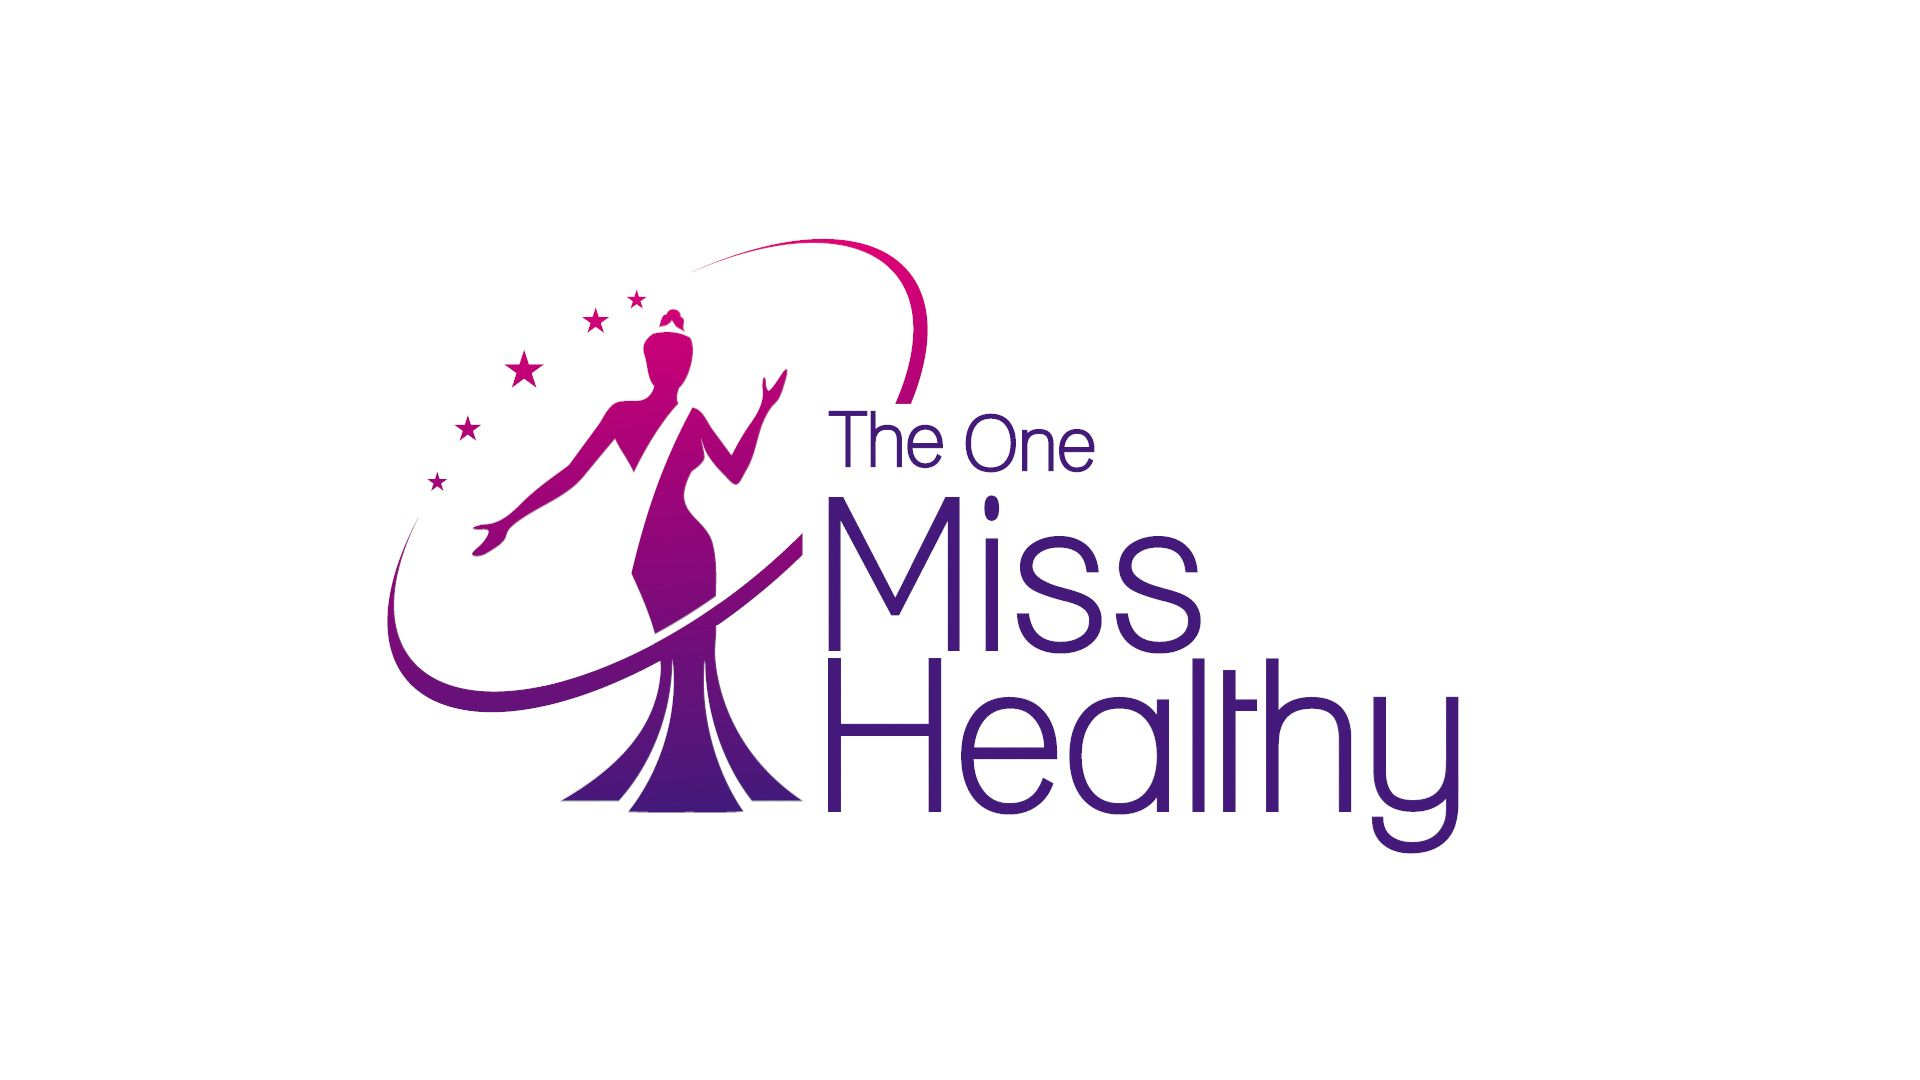 The One Miss Healthy